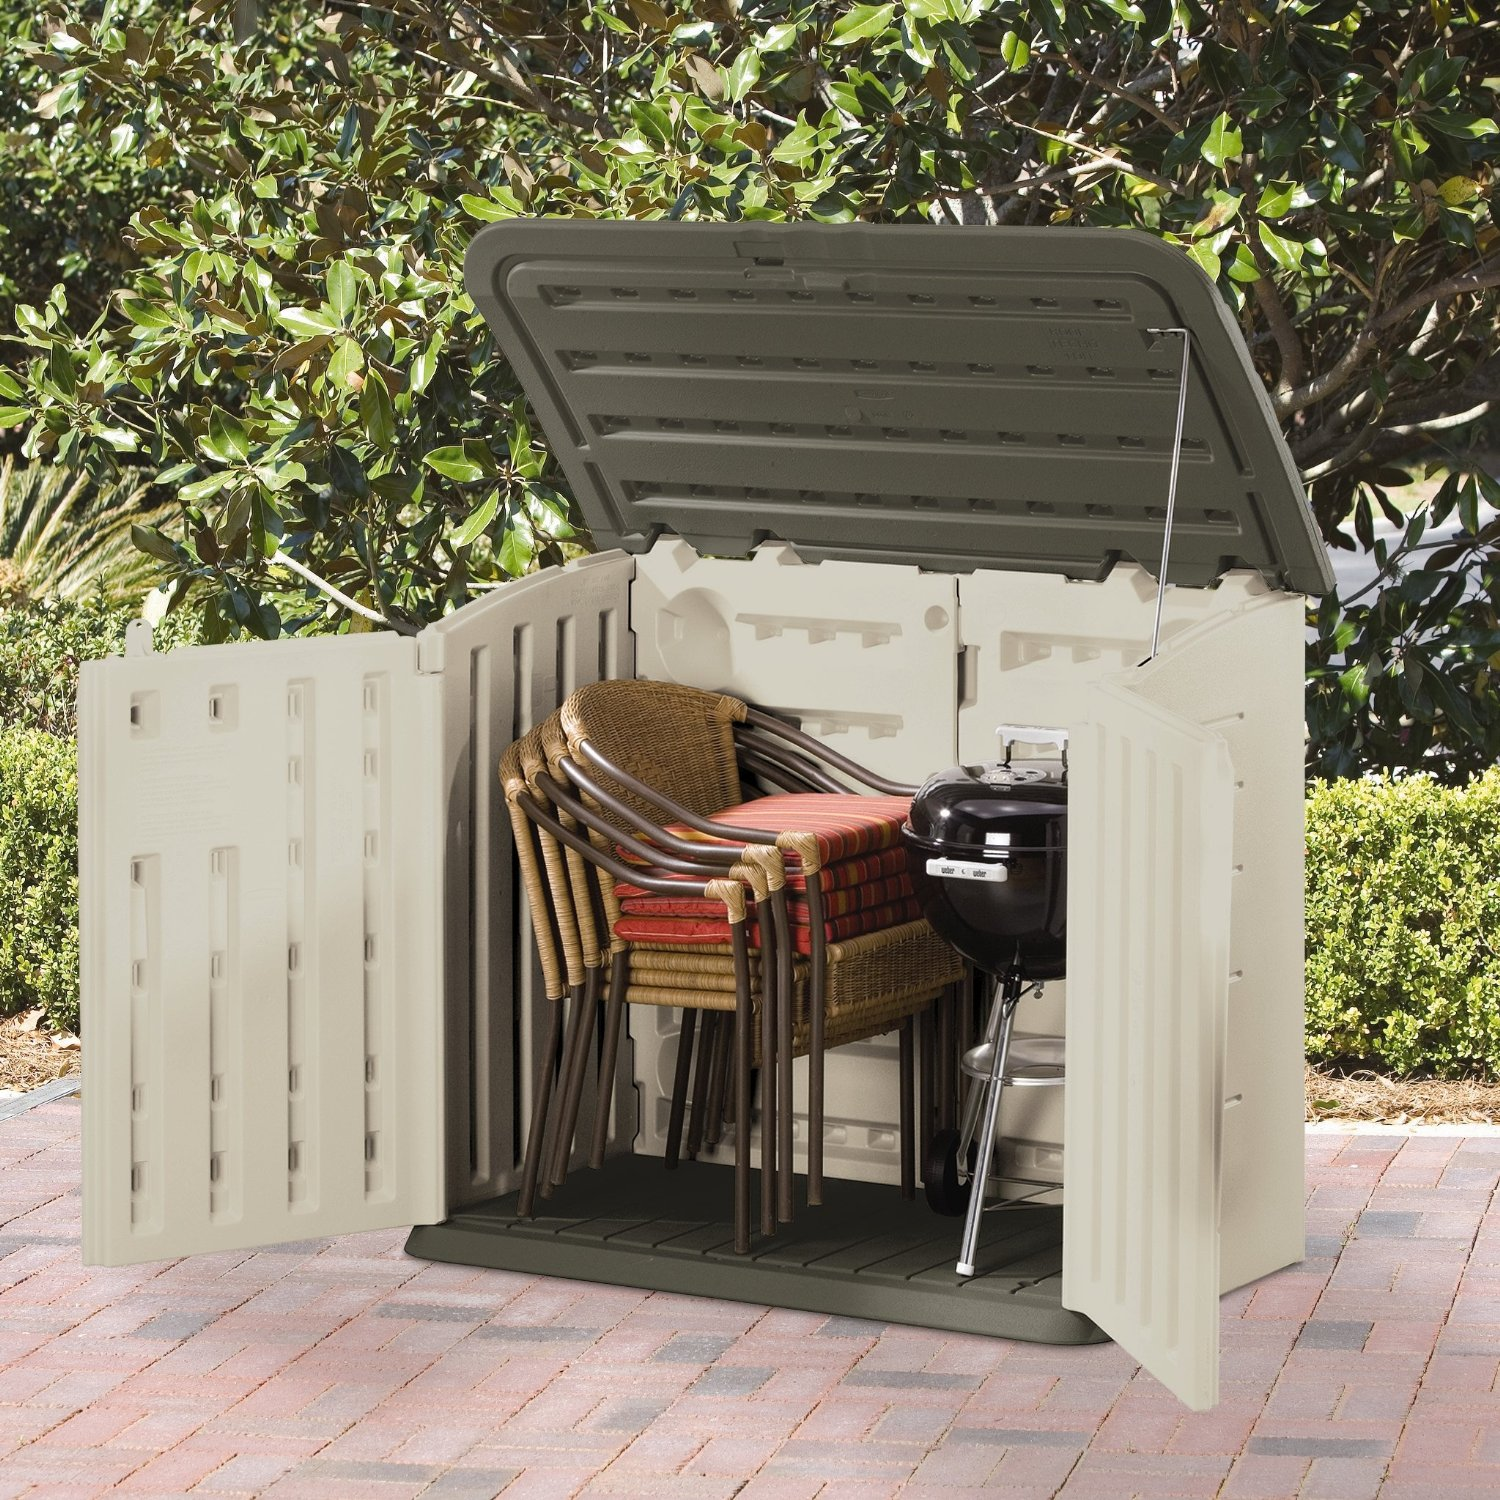 Rubbermaid Sheds | Rubbermaid Sheds 7x7 | Rubbermaid Storage Shed